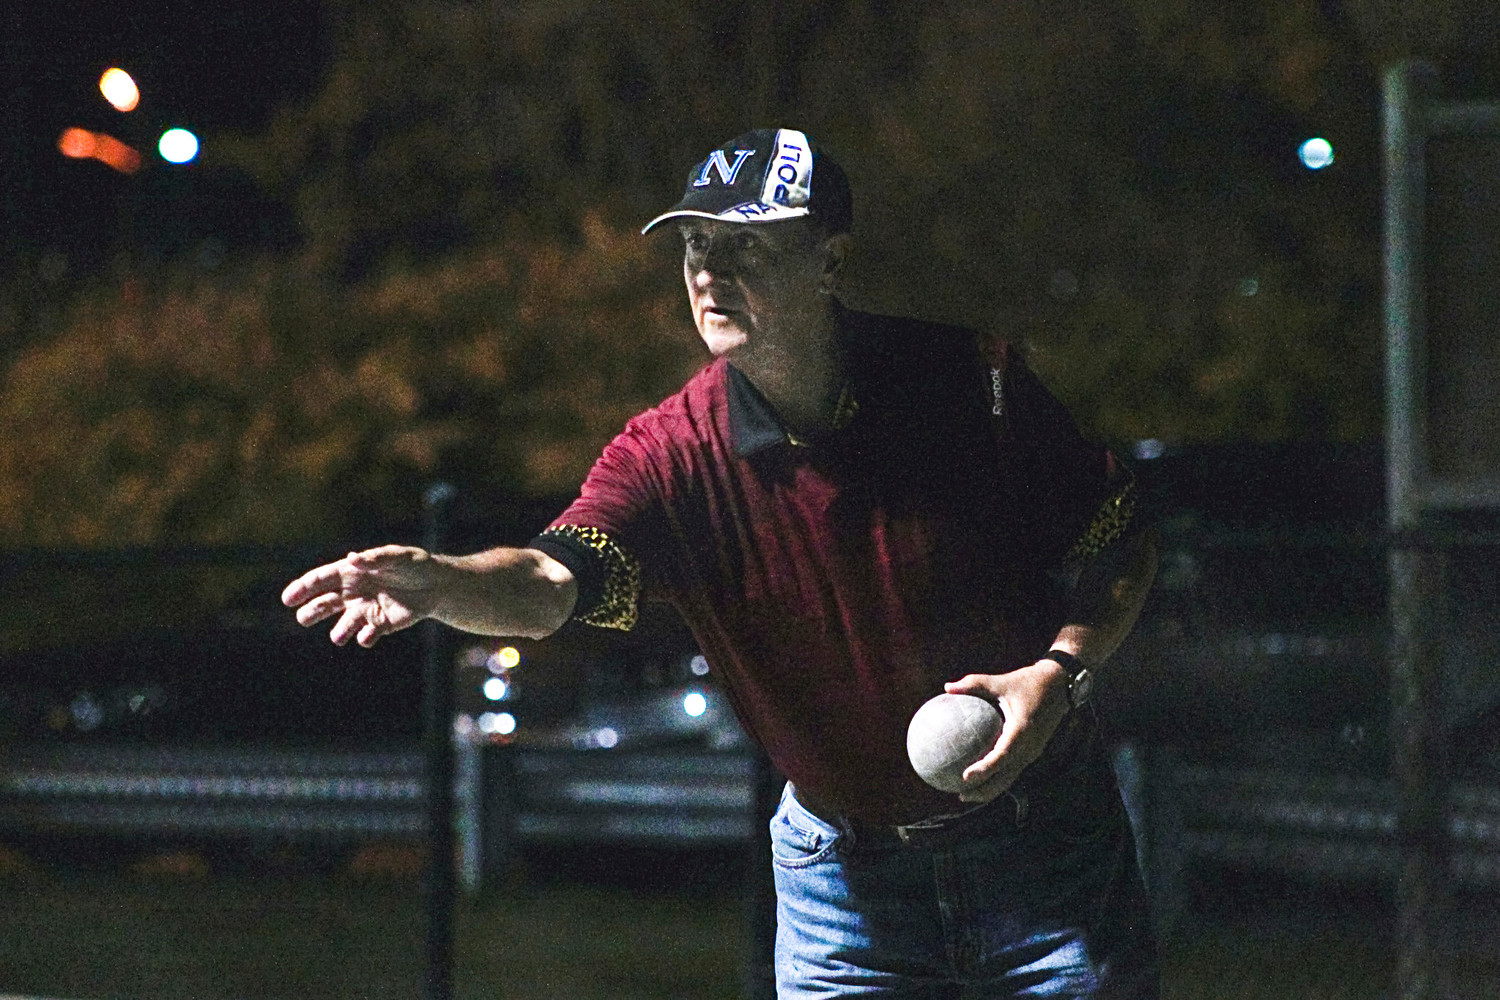 Sal Visone took a shot during the championship bocce match at Mill Dam Park in Huntington in October.